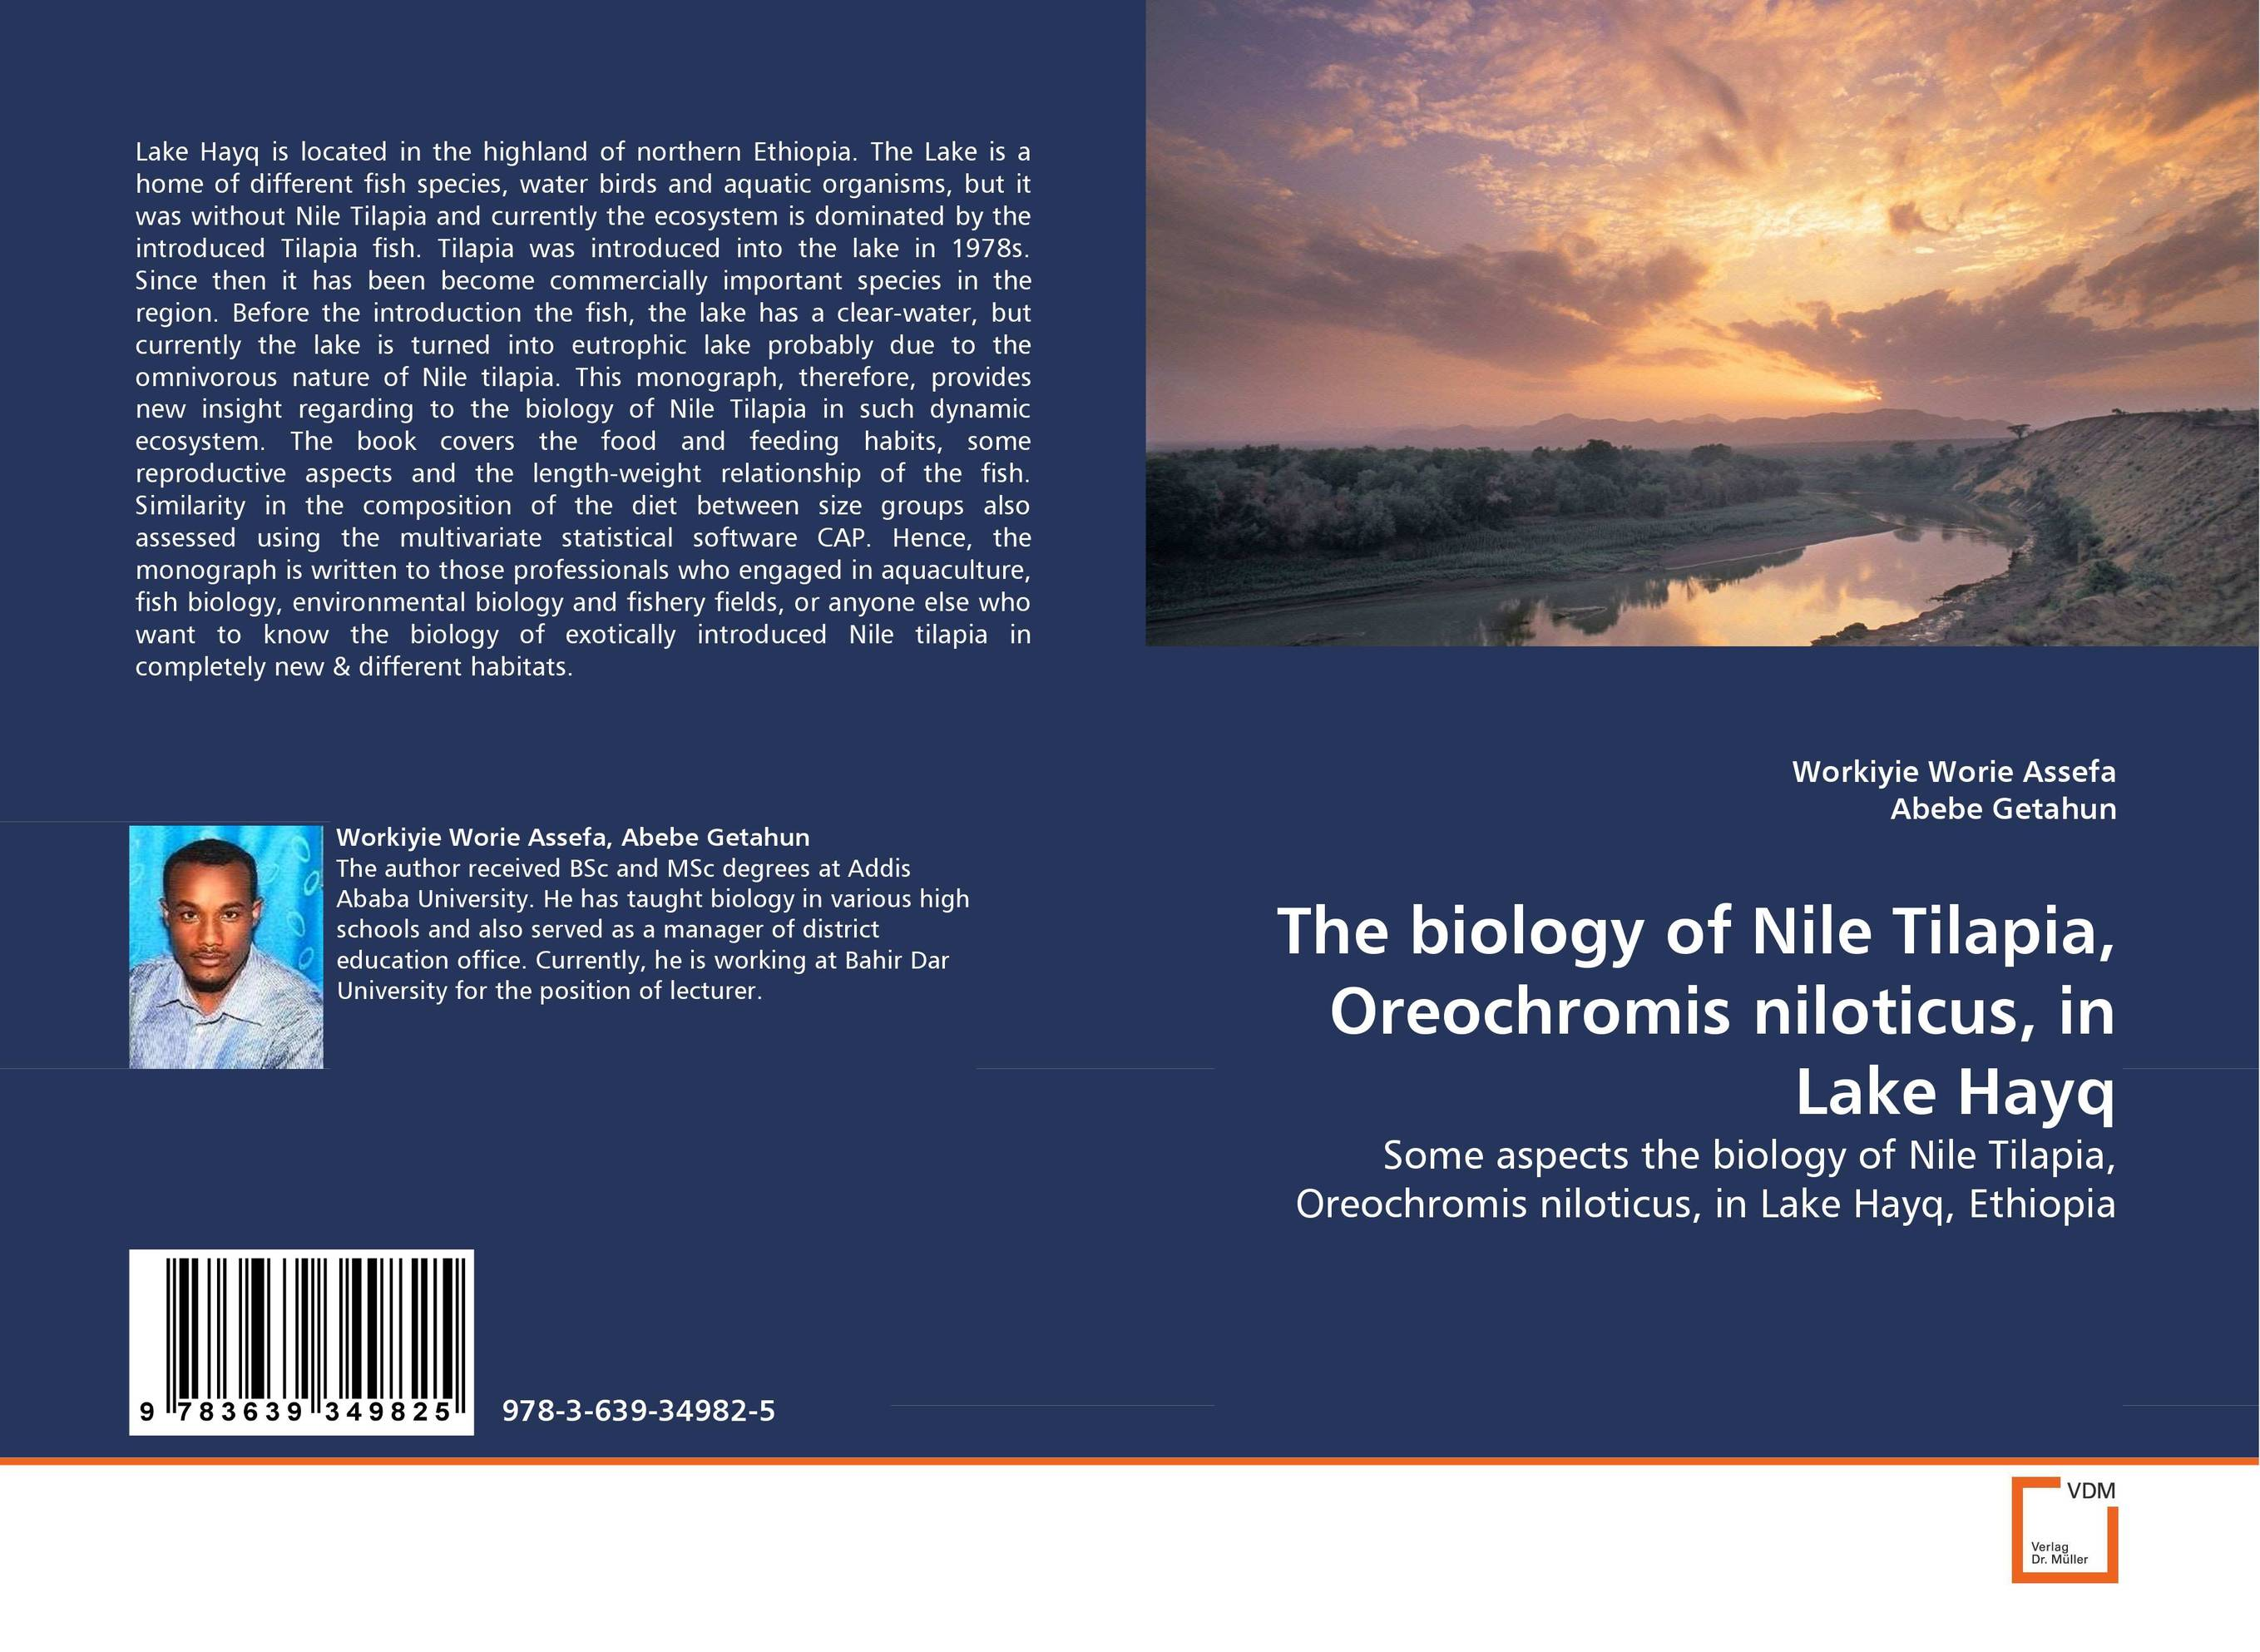 The biology of Nile Tilapia, Oreochromis niloticus, in Lake Hayq kamala gharti sahar and mixed sex nile tilapia in polyculture